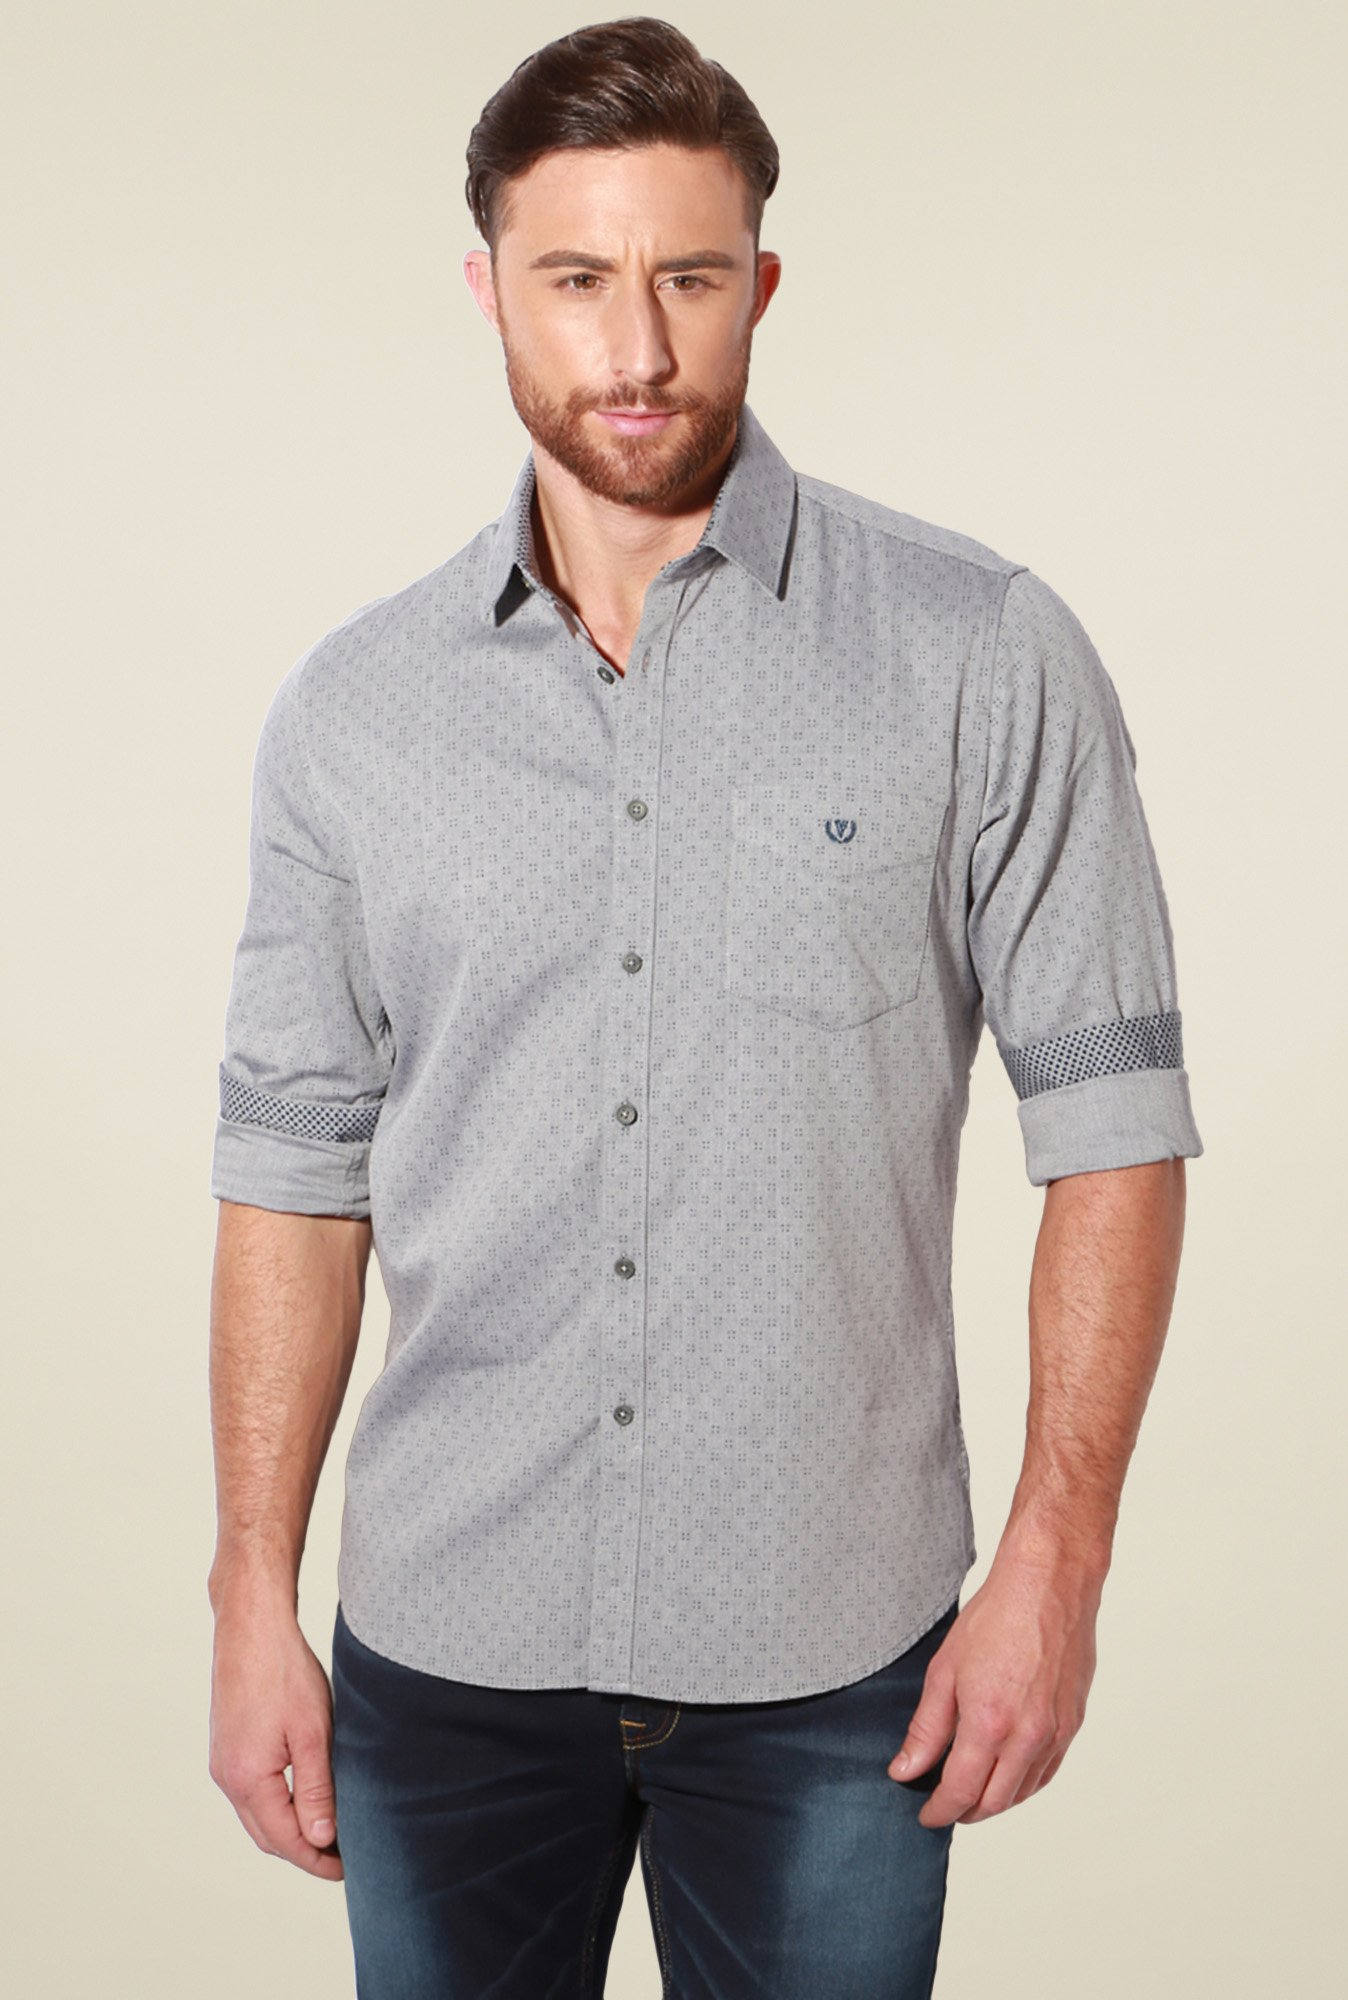 Van Heusen Grey Slim Fit Printed Cotton Shirt